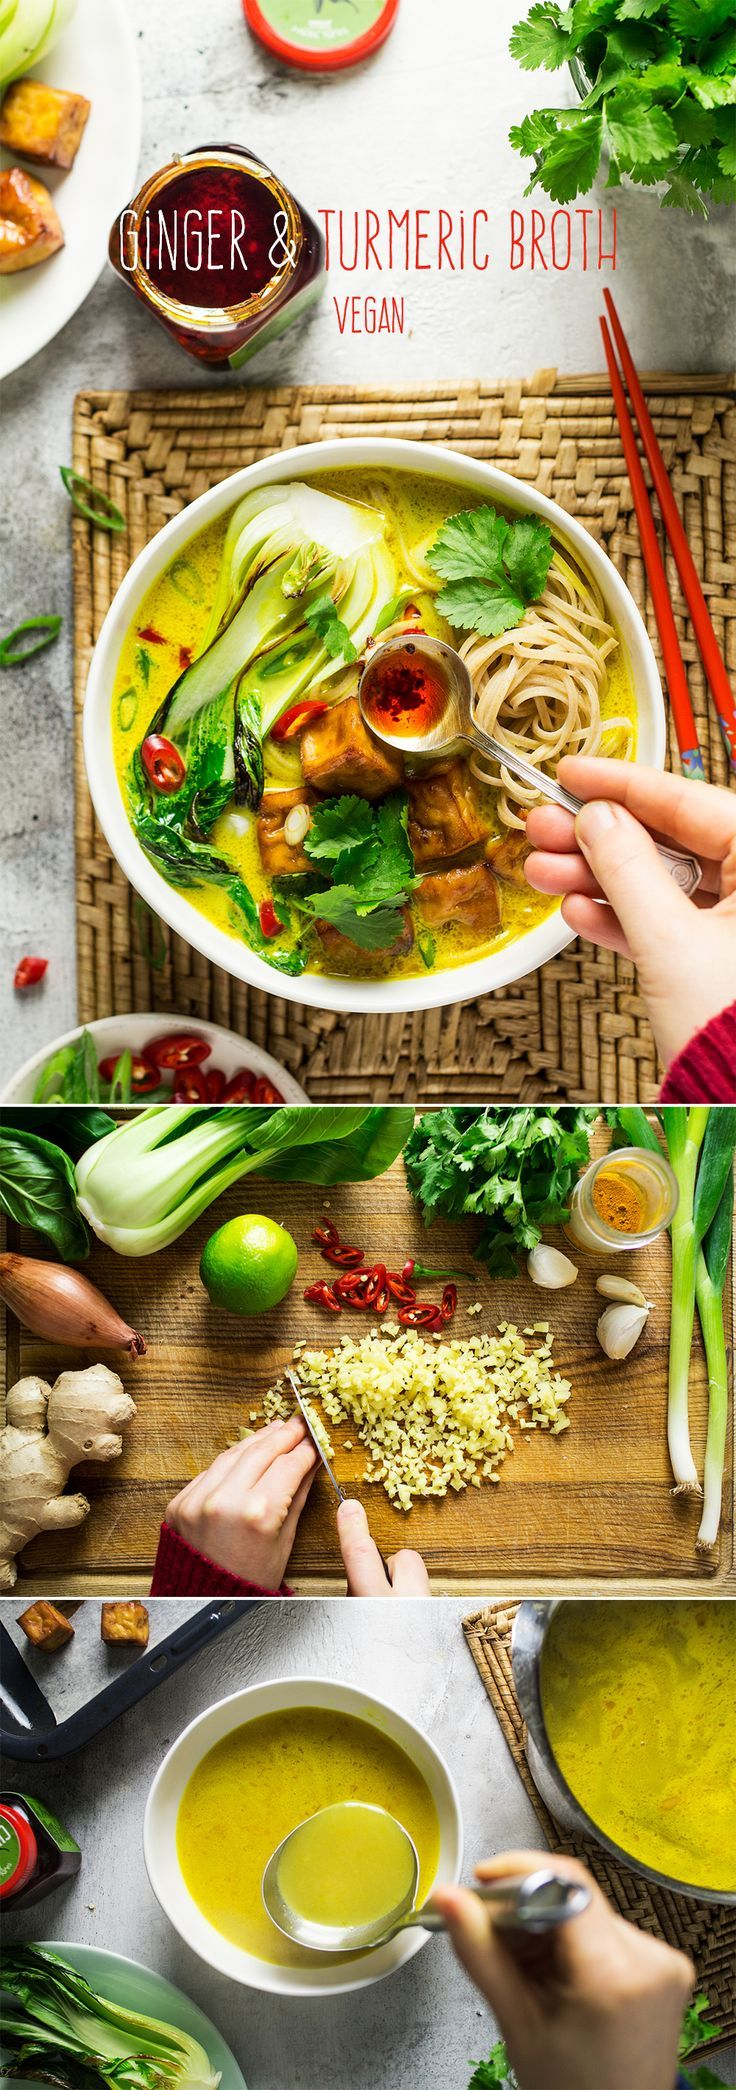 Vegan turmeric ginger broth with noodles, baked tofu and greens